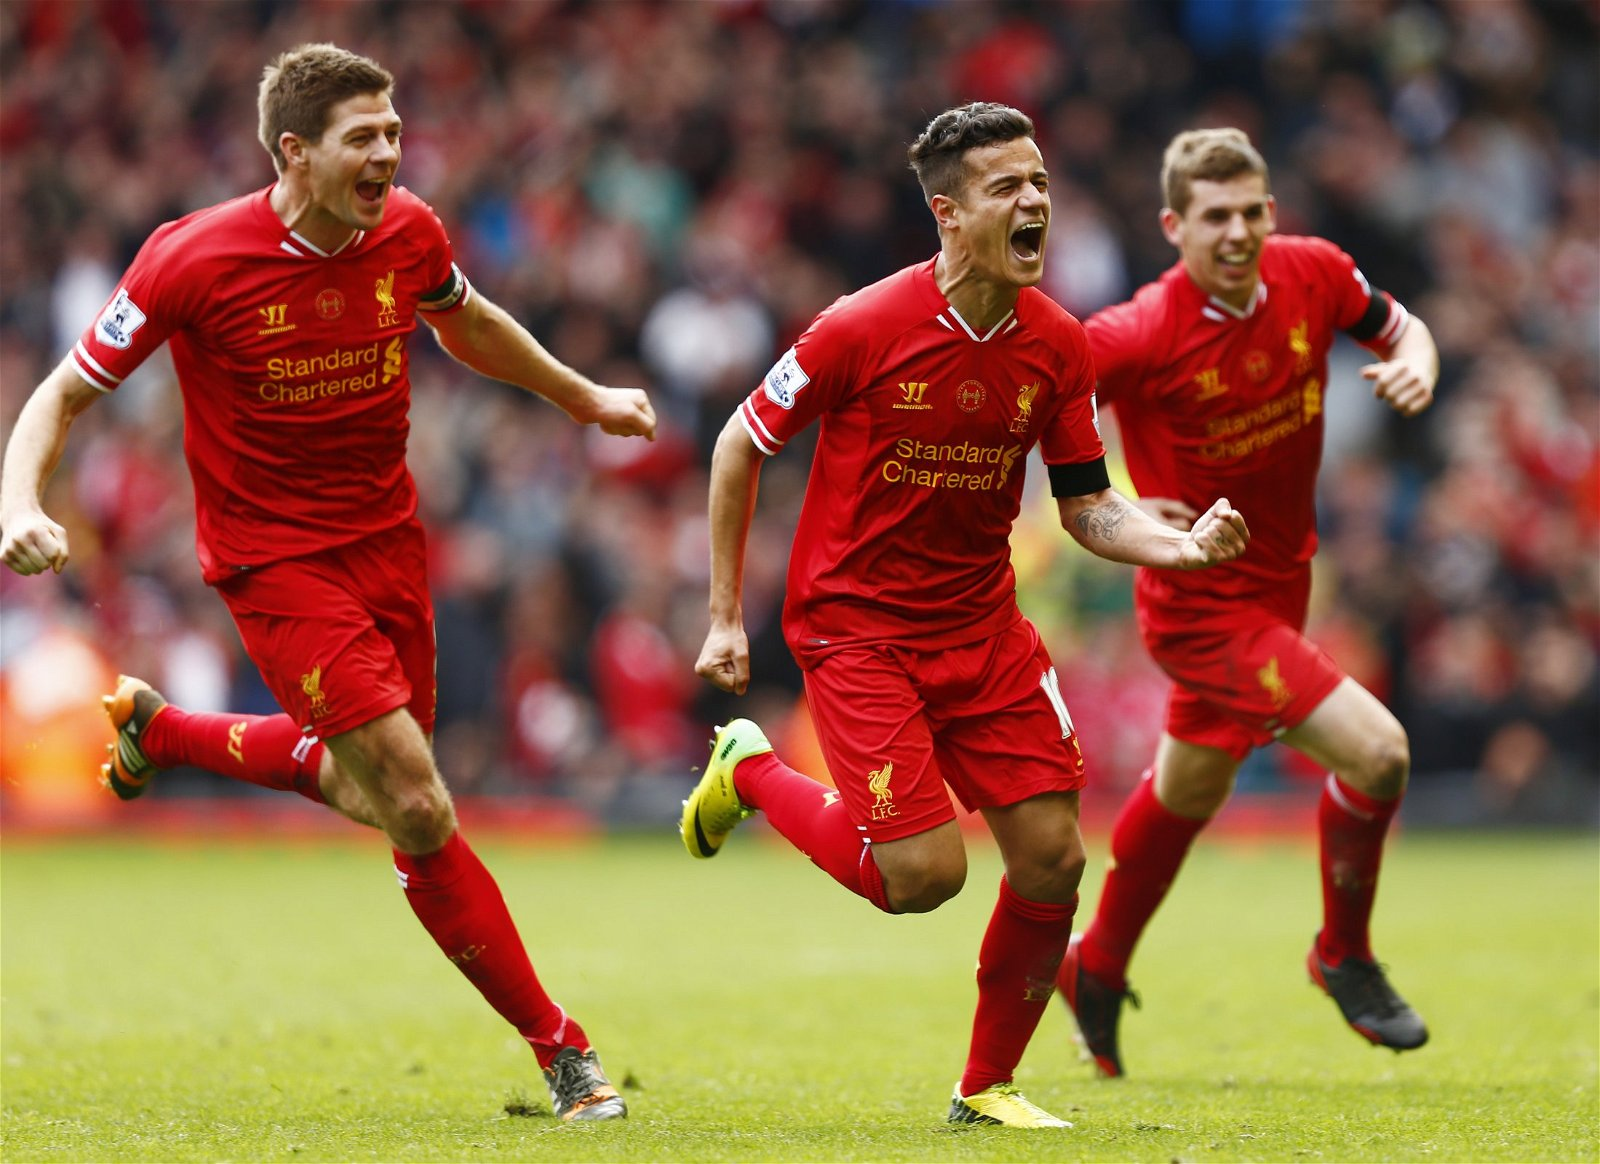 Philippe Coutinho celebrates scoring against Manchester City